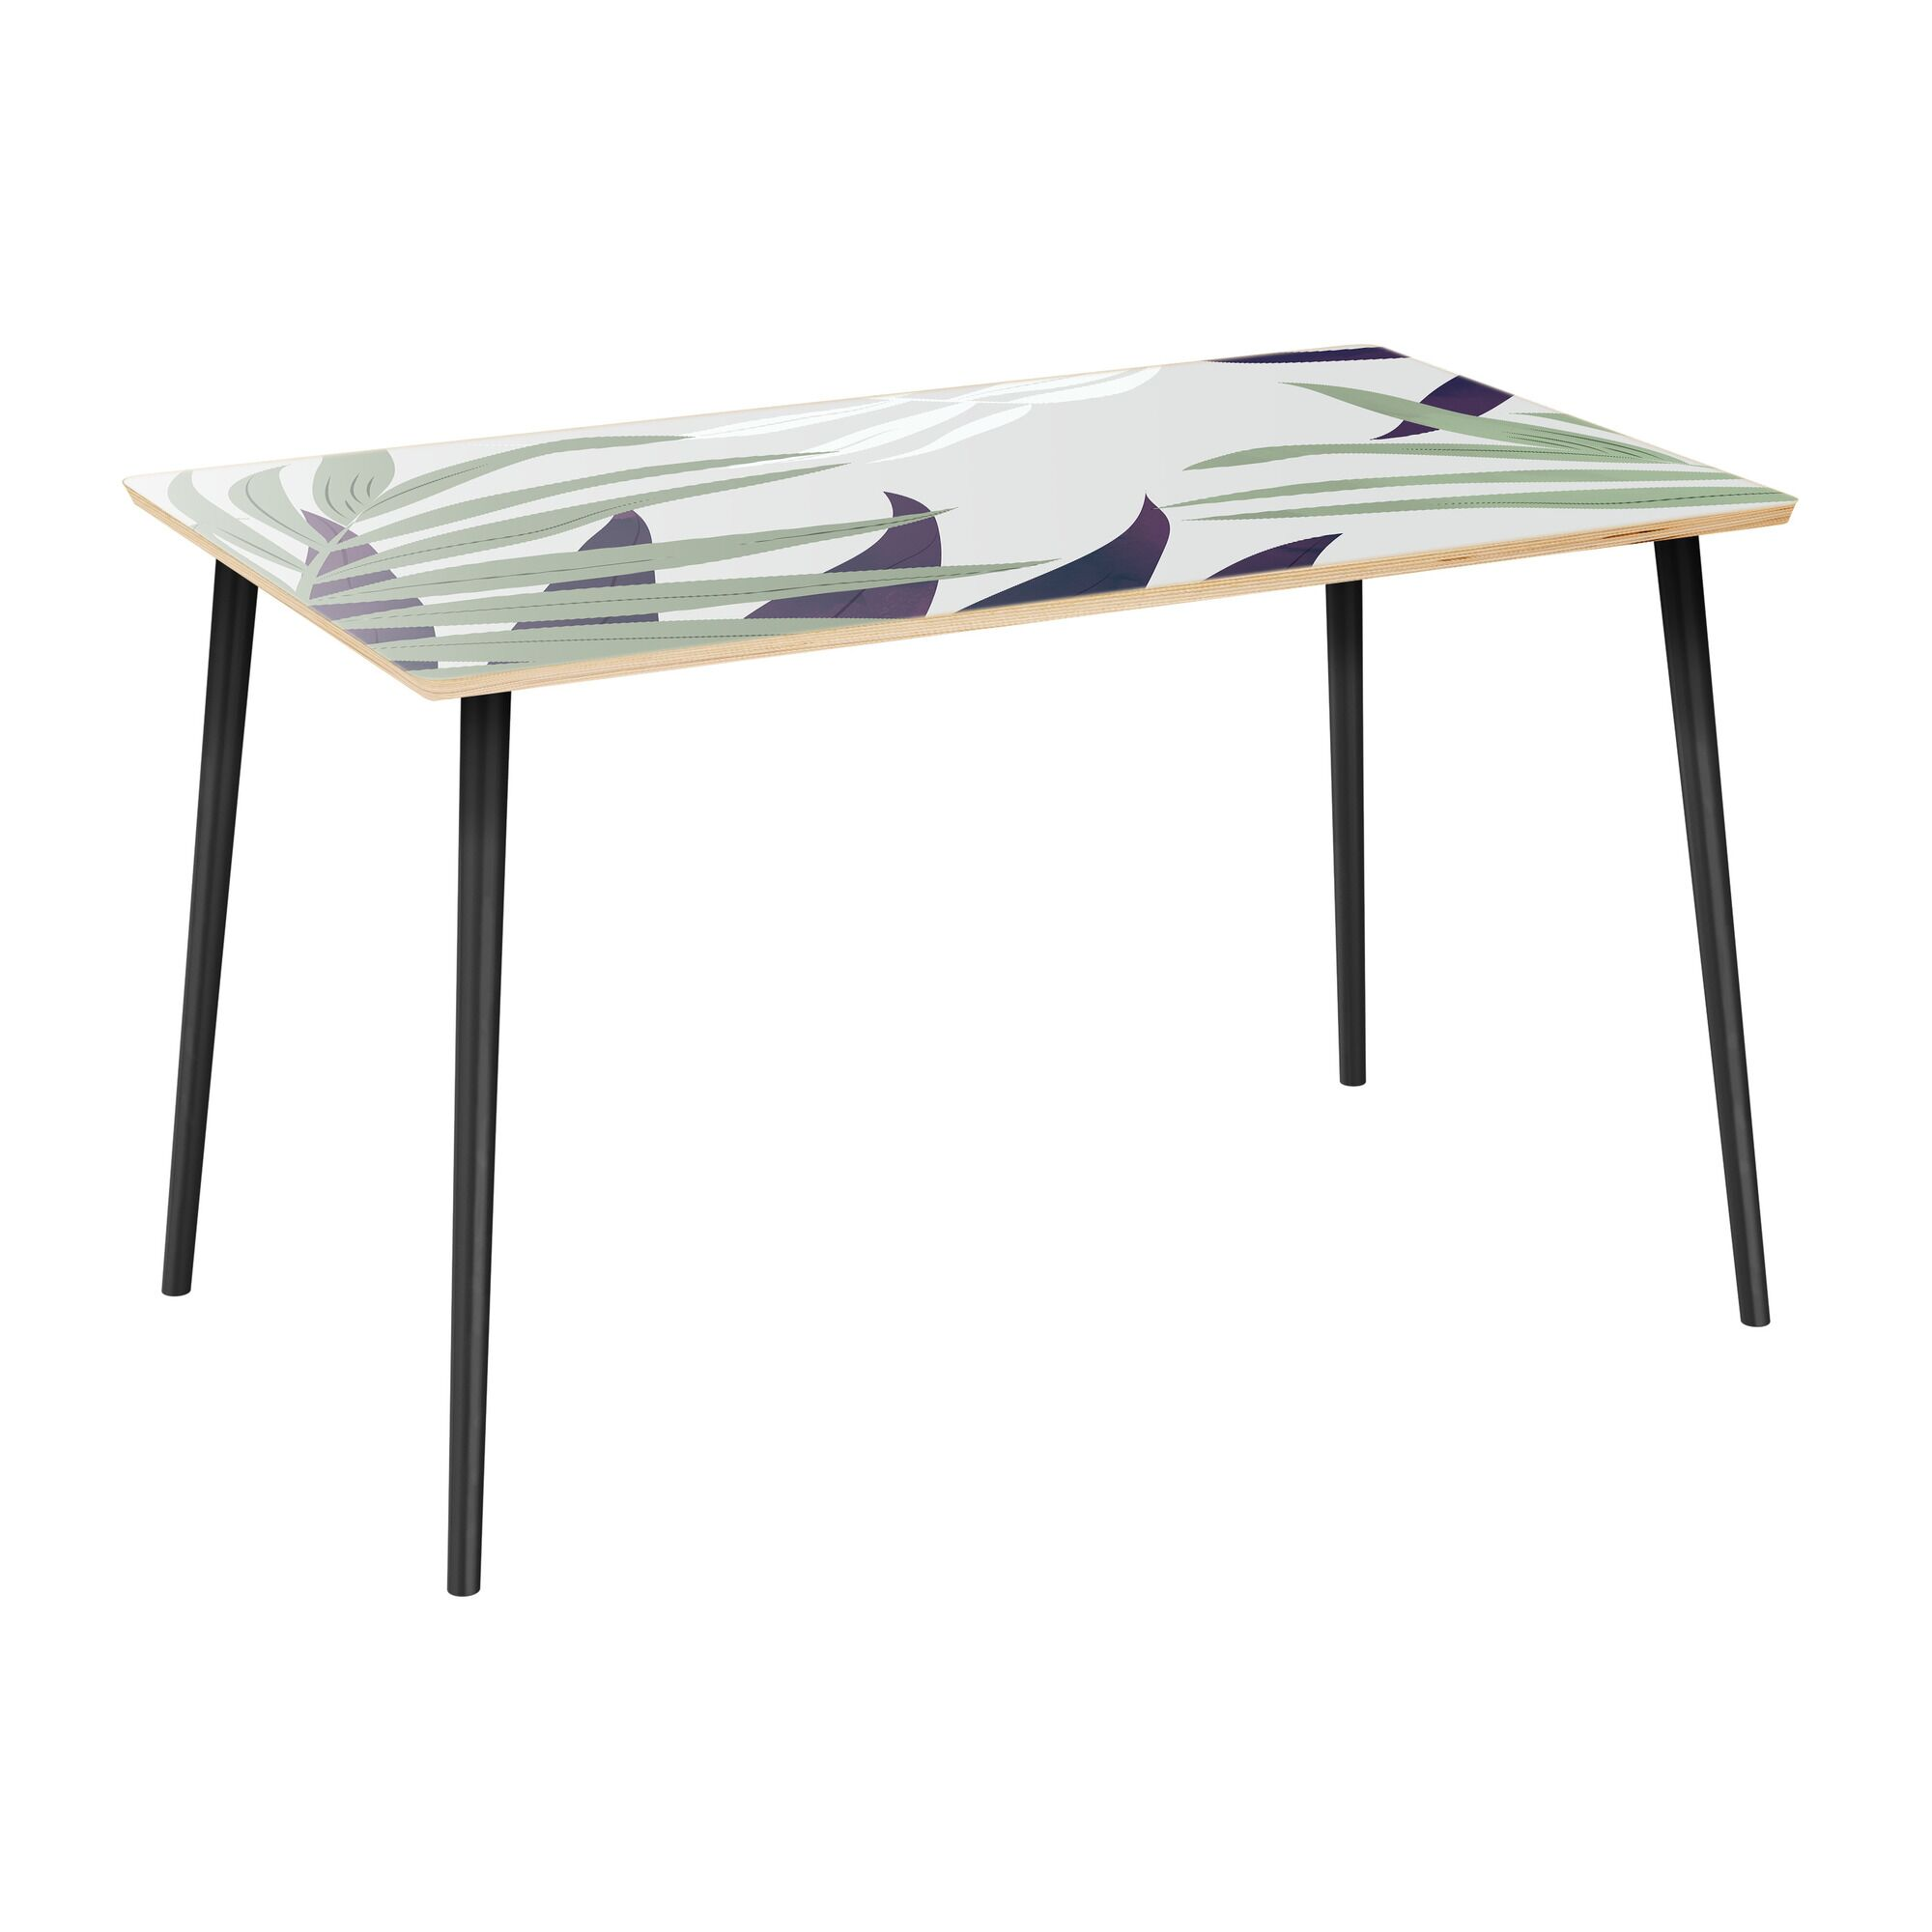 Mercurio Dining Table Table Top Color: Natural, Table Base Color: Black